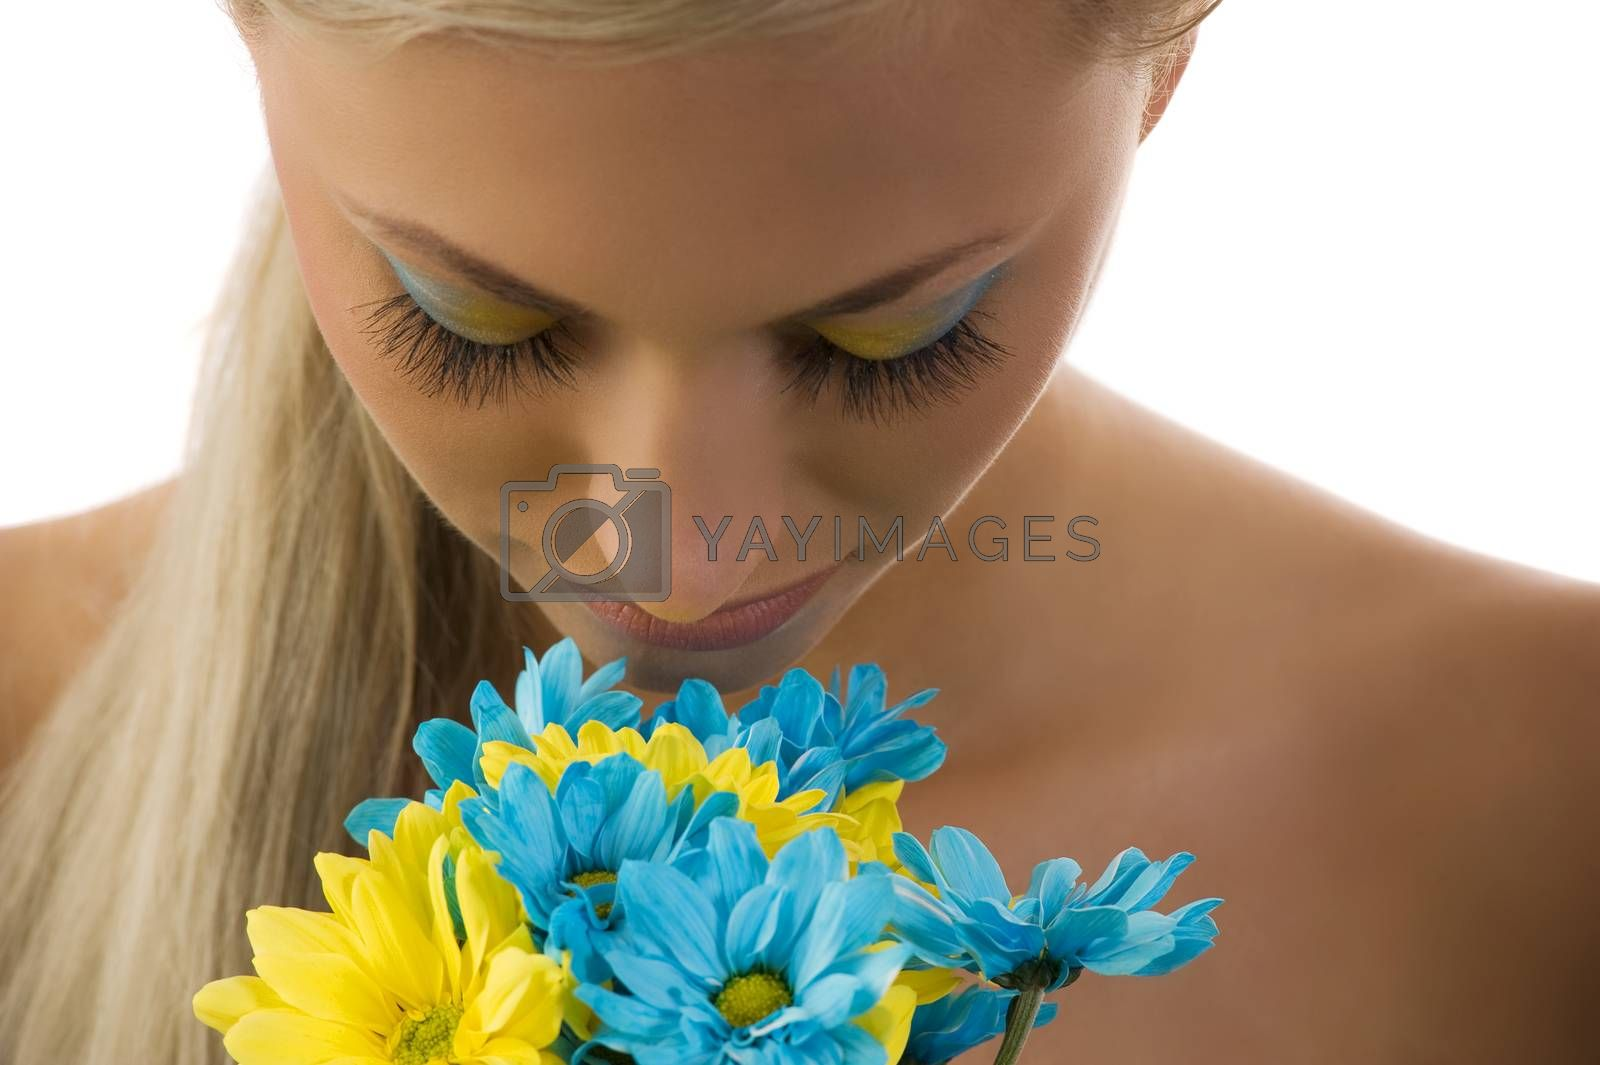 Royalty free image of smelling flowers by fotoCD